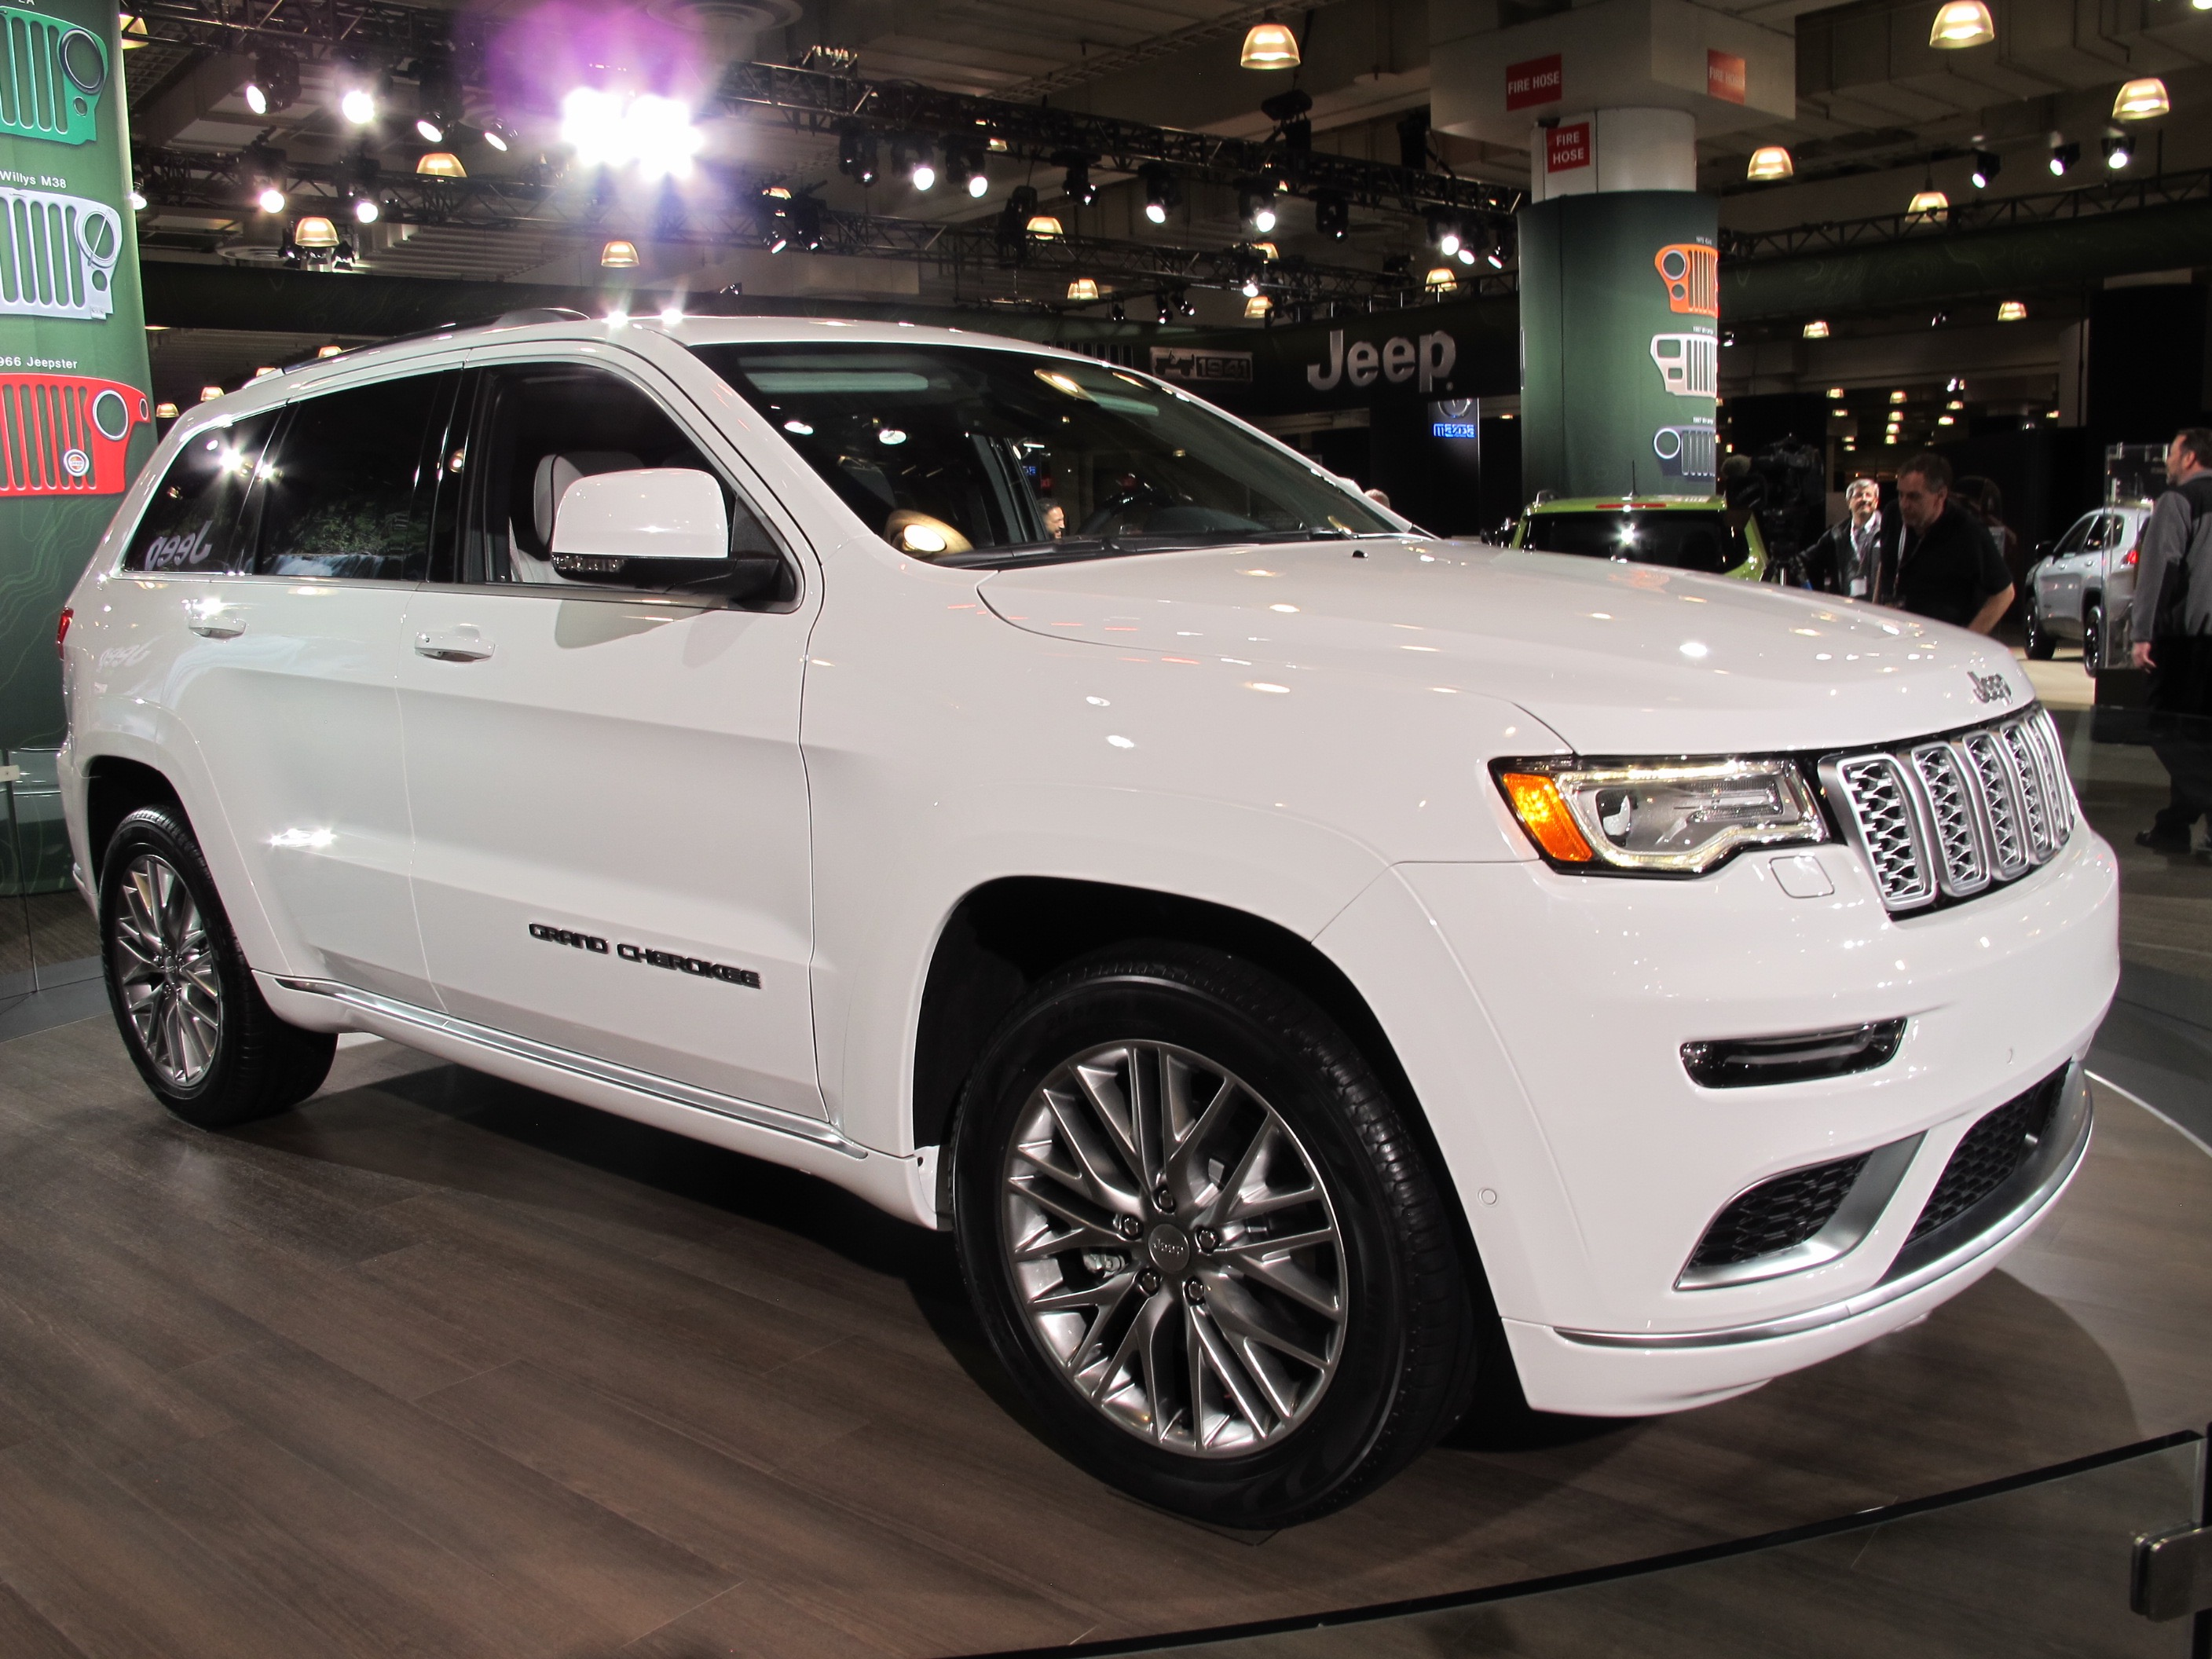 Grand Cheroke 2017 >> 2017 Jeep Grand Cherokee Summit revealed: Live photos